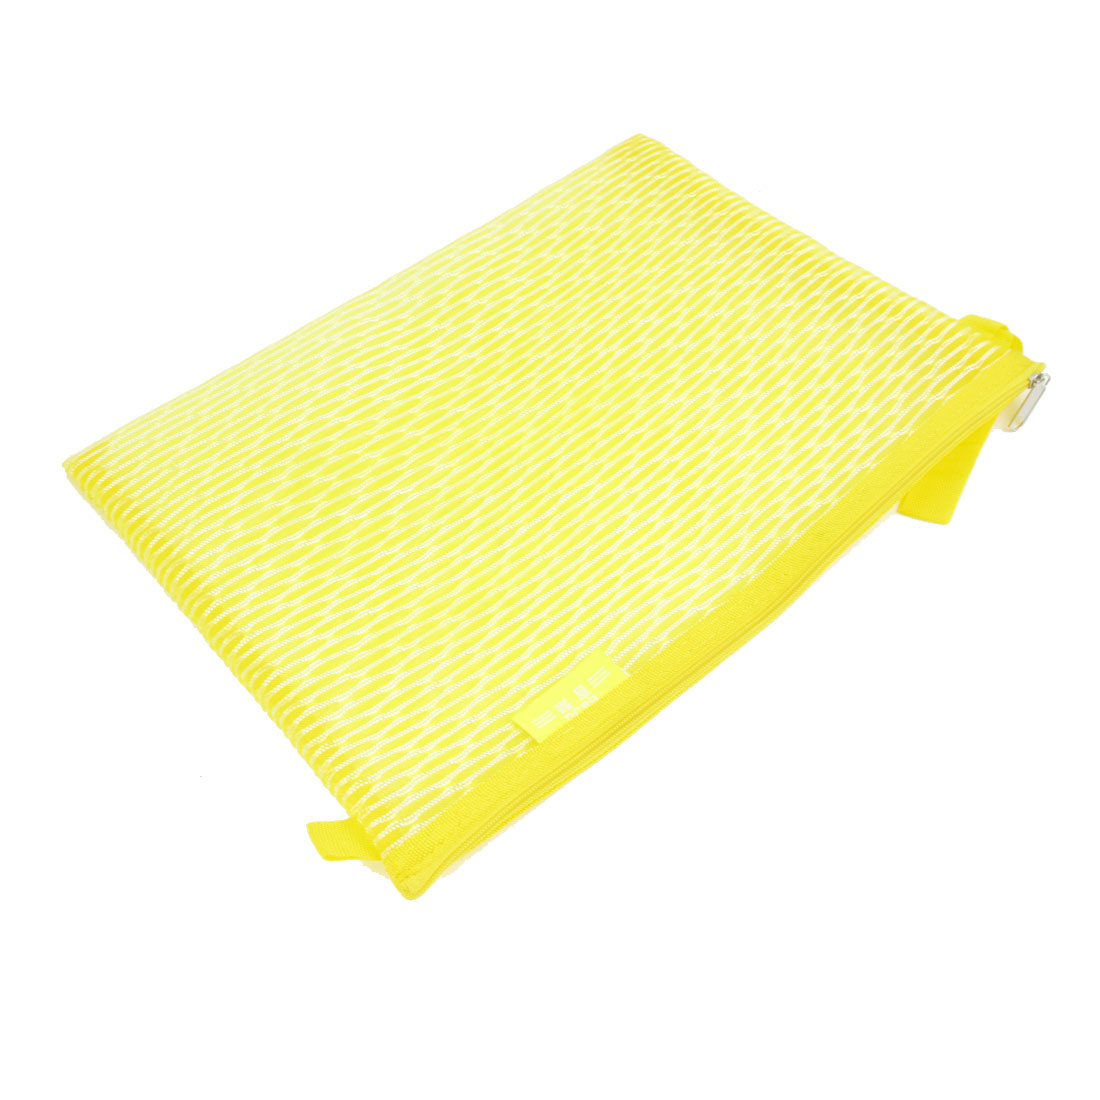 PVC Gridding Zipper Closure A4 Paper File Bag Office Document Holder Yellow